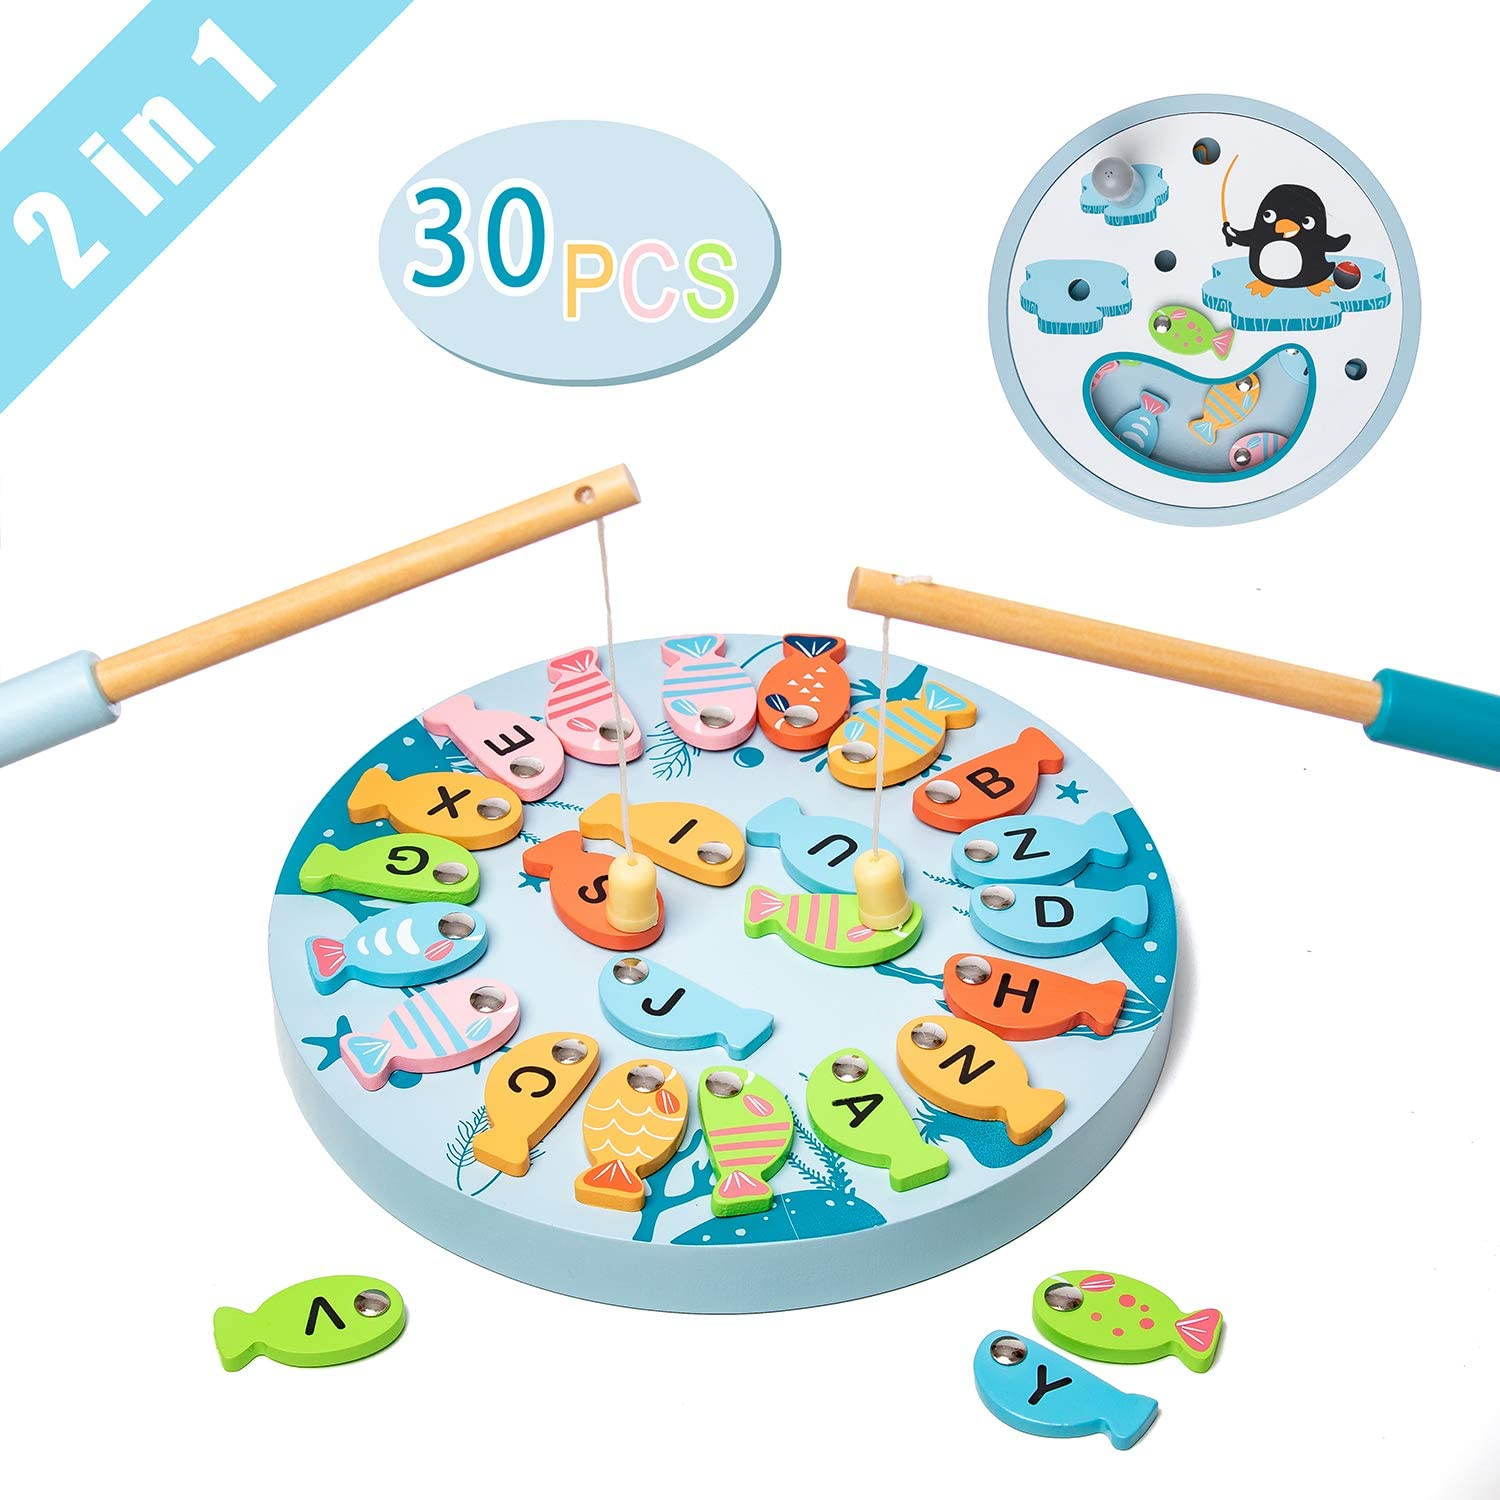 UMU Magnetic Fishing Game Wooden Toy for Kids, 26 PCS Alphabet Letters Magnetic Fishing Toy for Catching & Counting - Preschool Floor and Board Games for 3, 4, 5 Year Old Boys Girls Kids and Toddlers